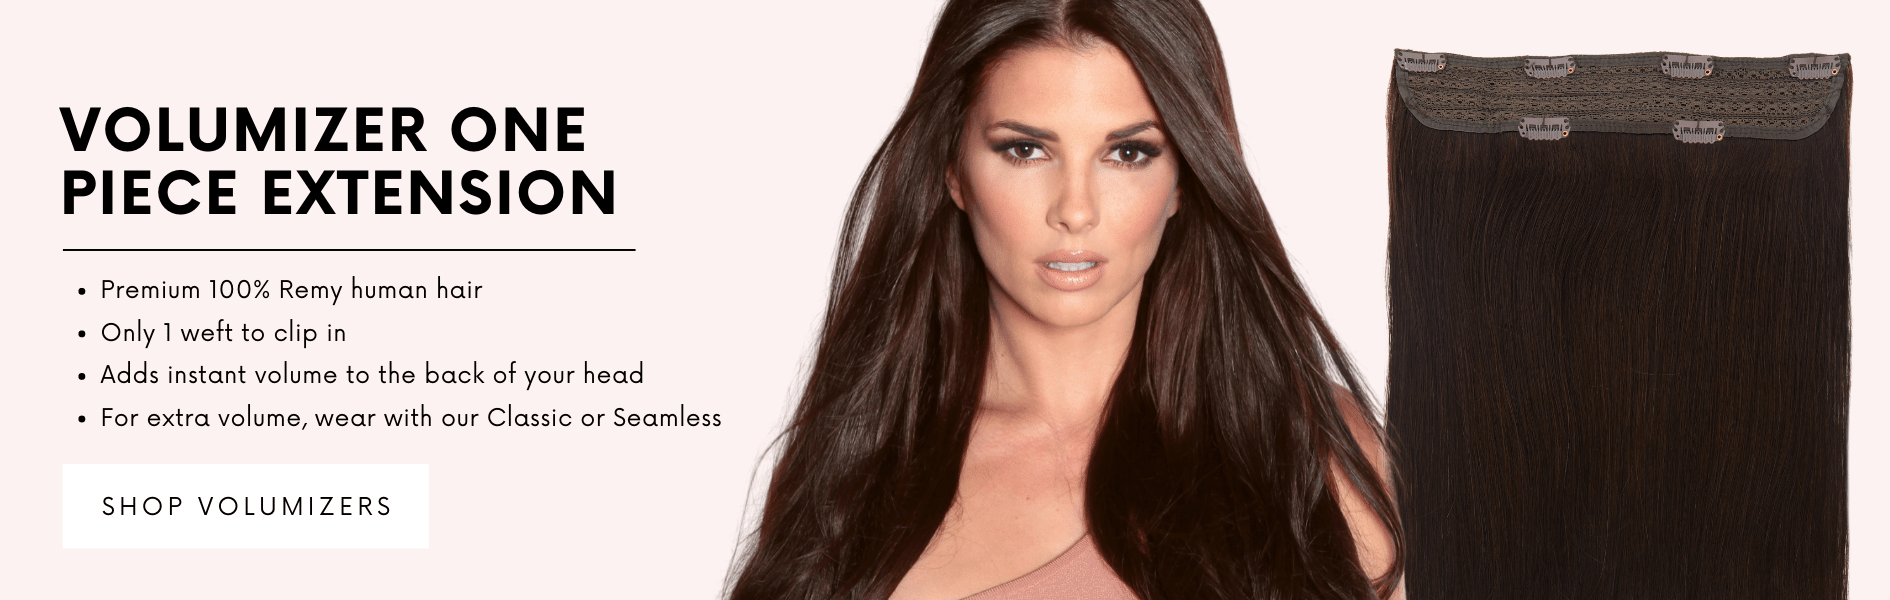 volumizer-one-piece-cashmere-hair-extensions.png